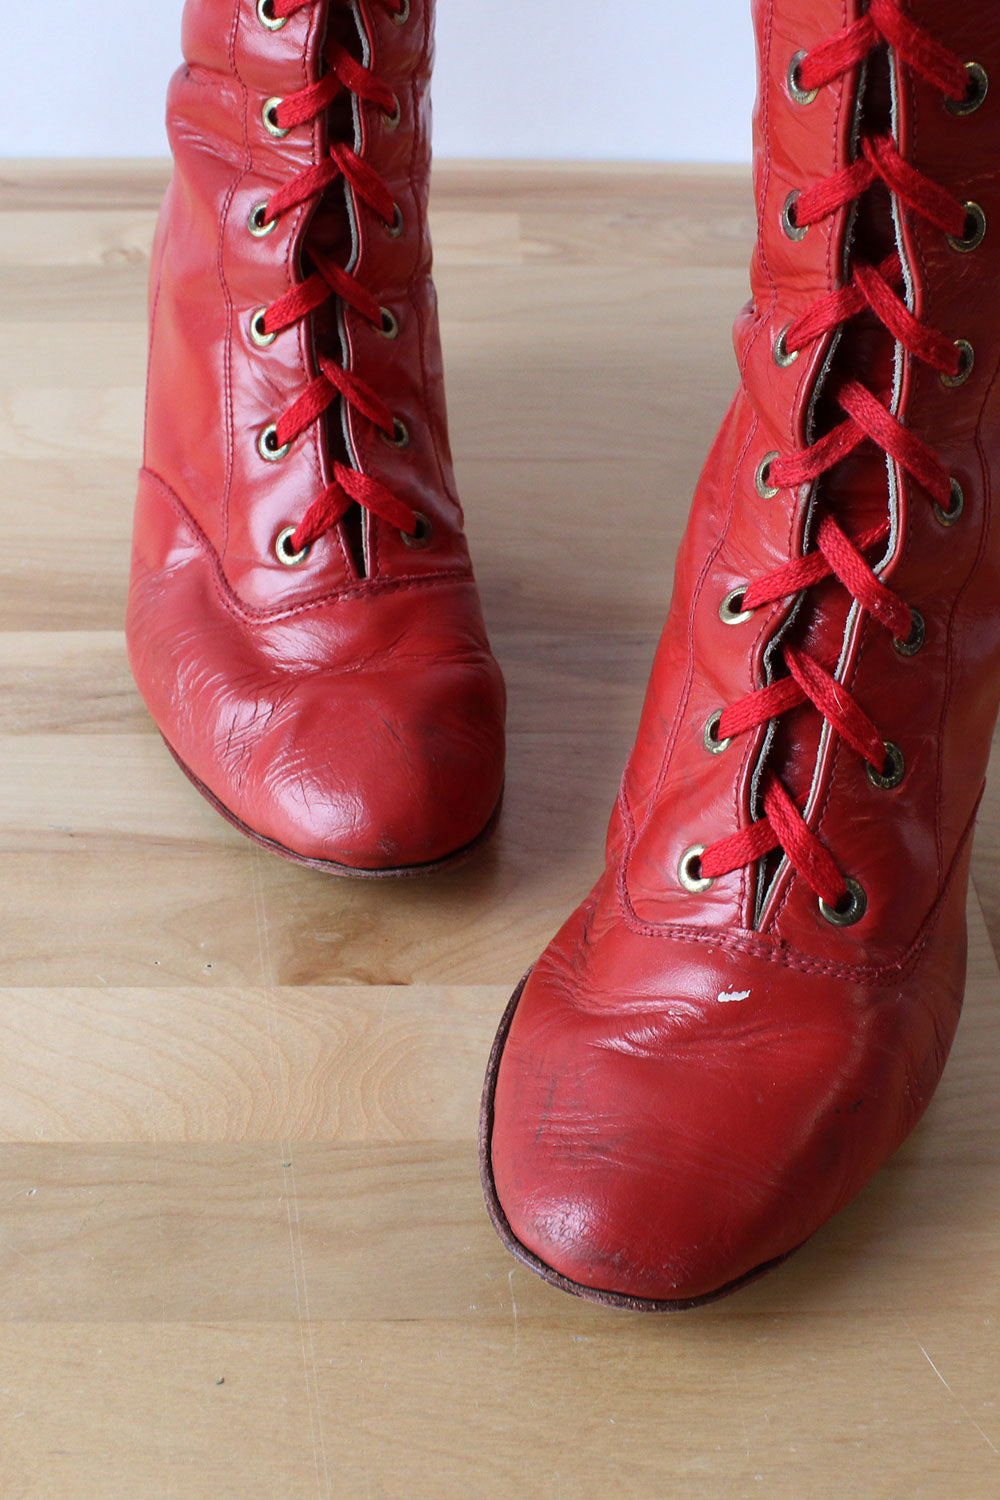 Brick Leather Lace-up Boots 8-8.5